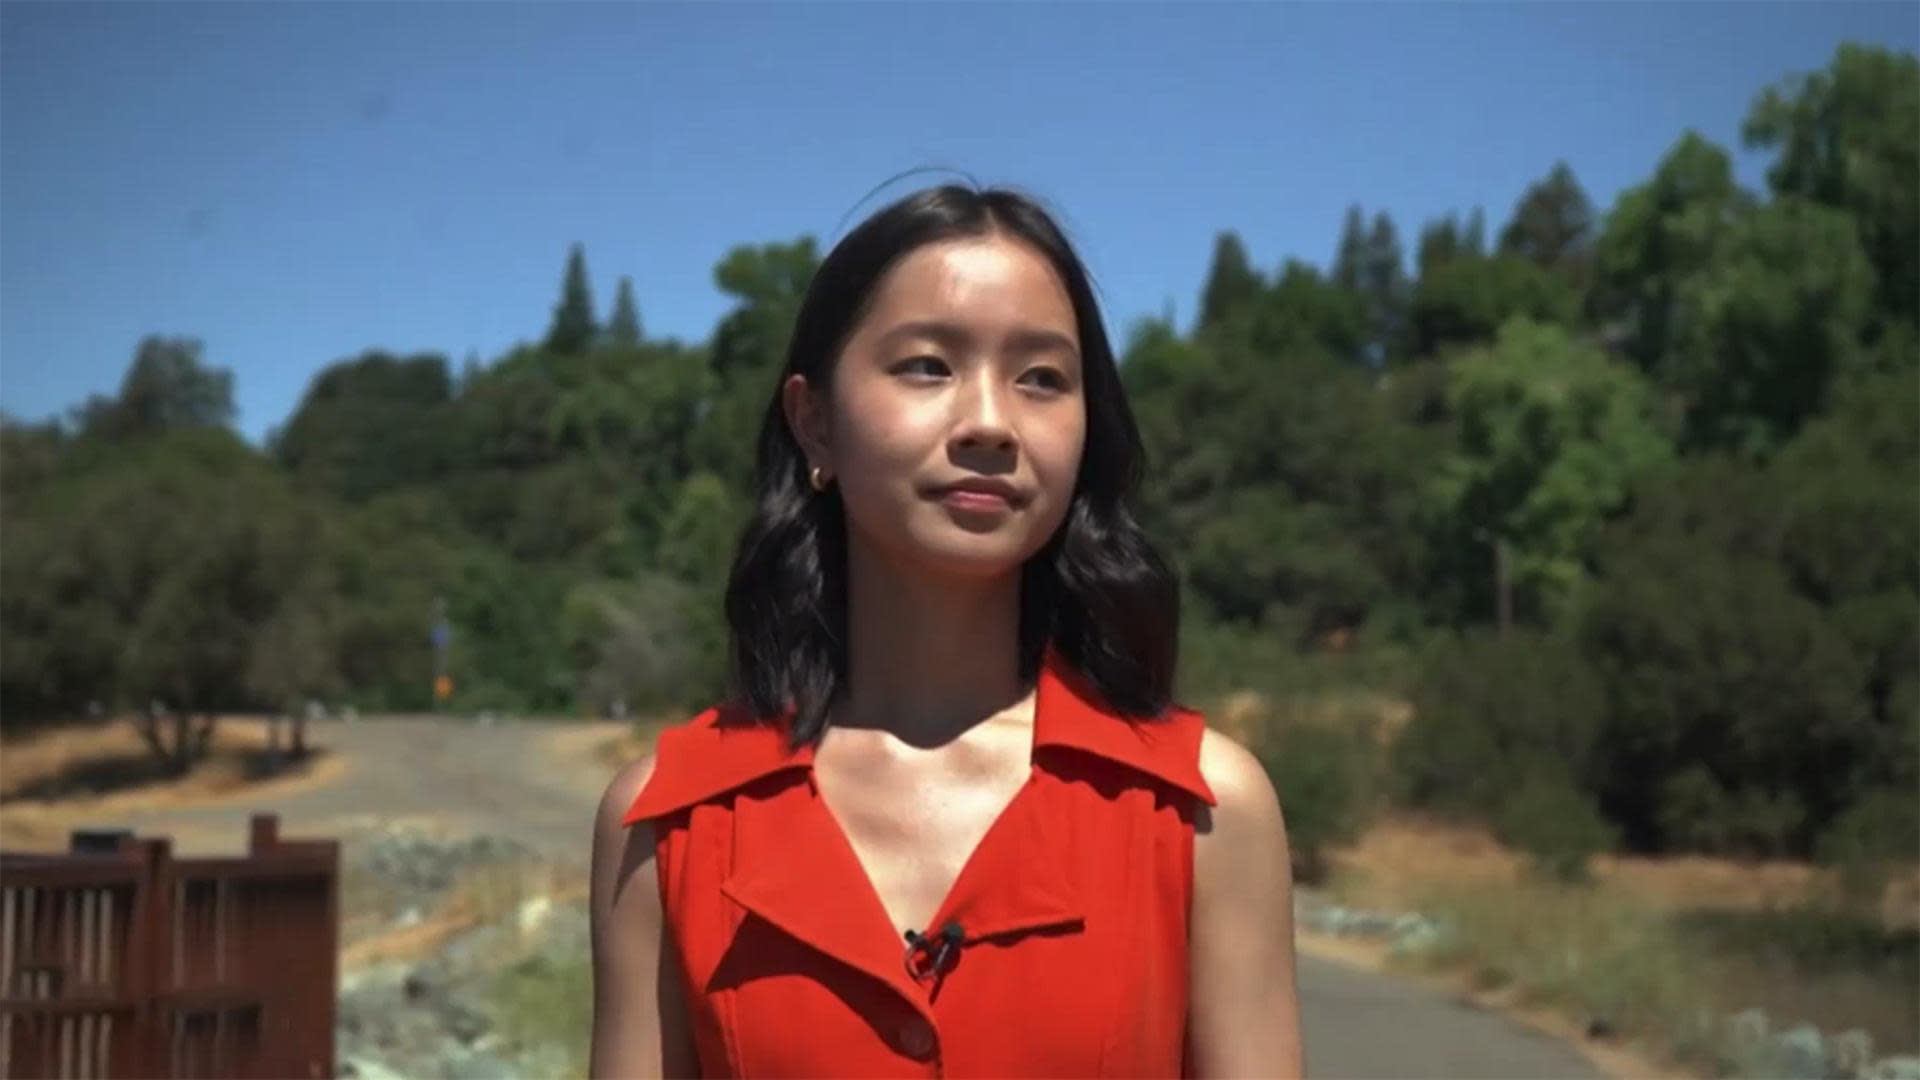 Youth poet laureate on equality, identity and her